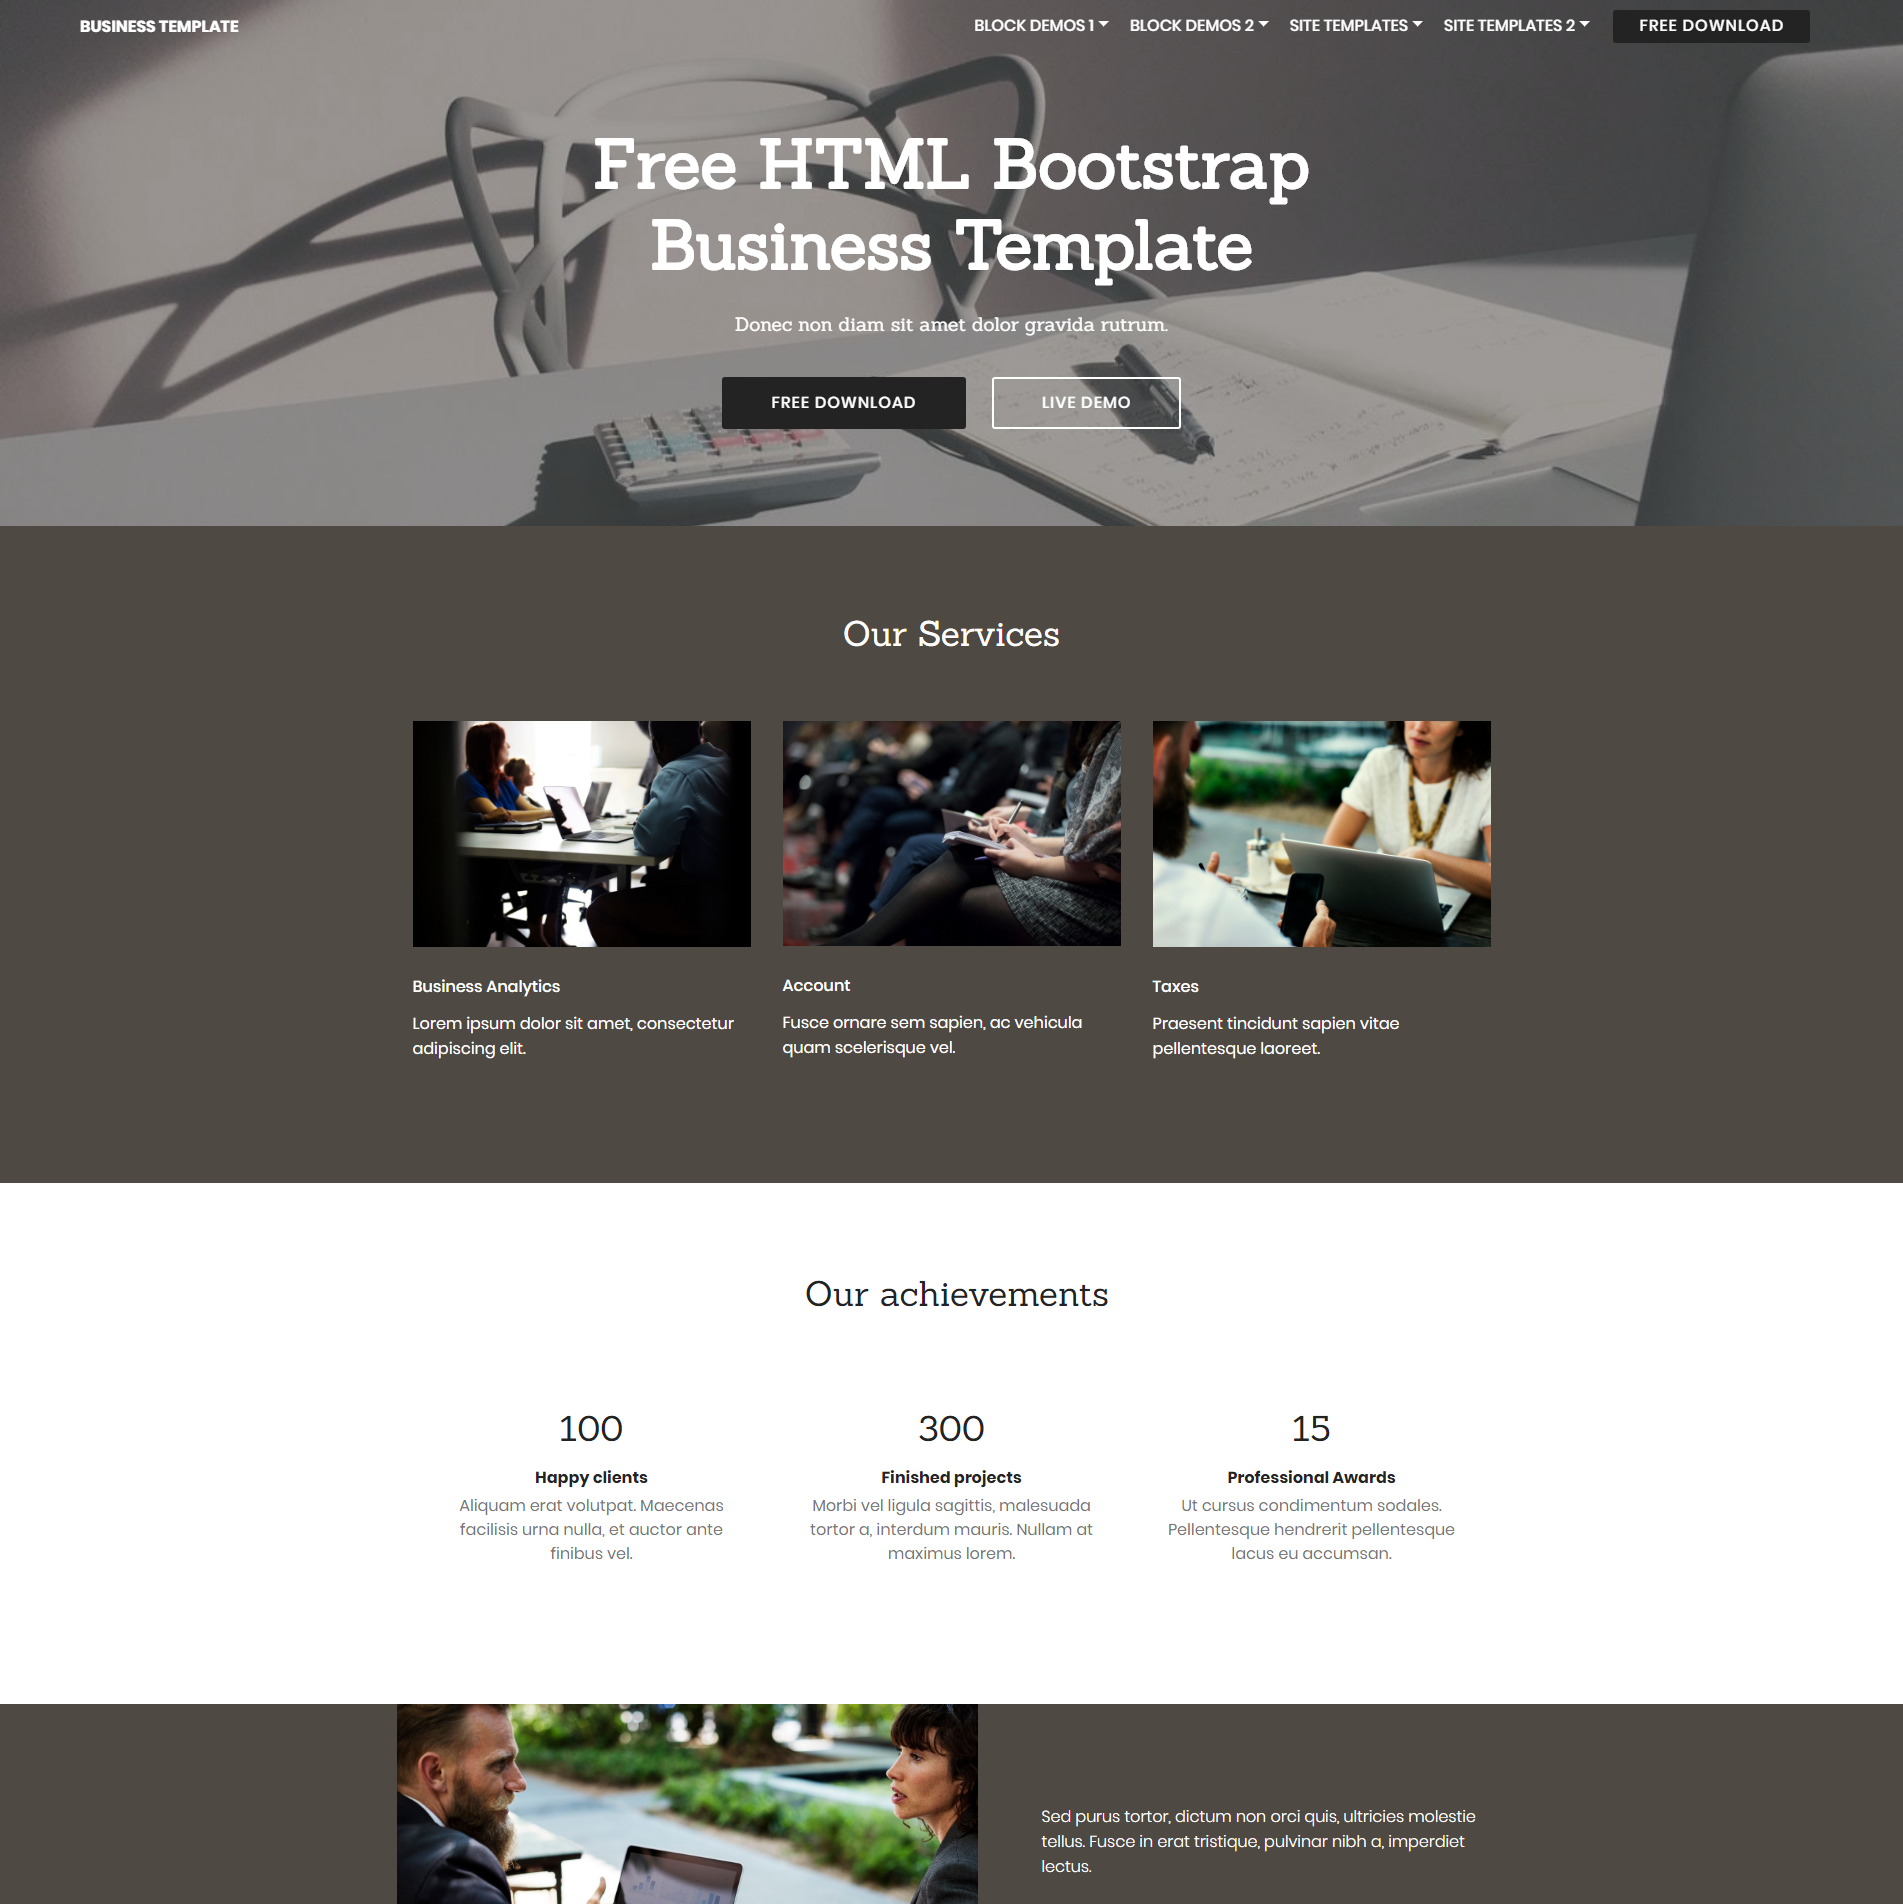 HTML5 Bootstrap Business Templates